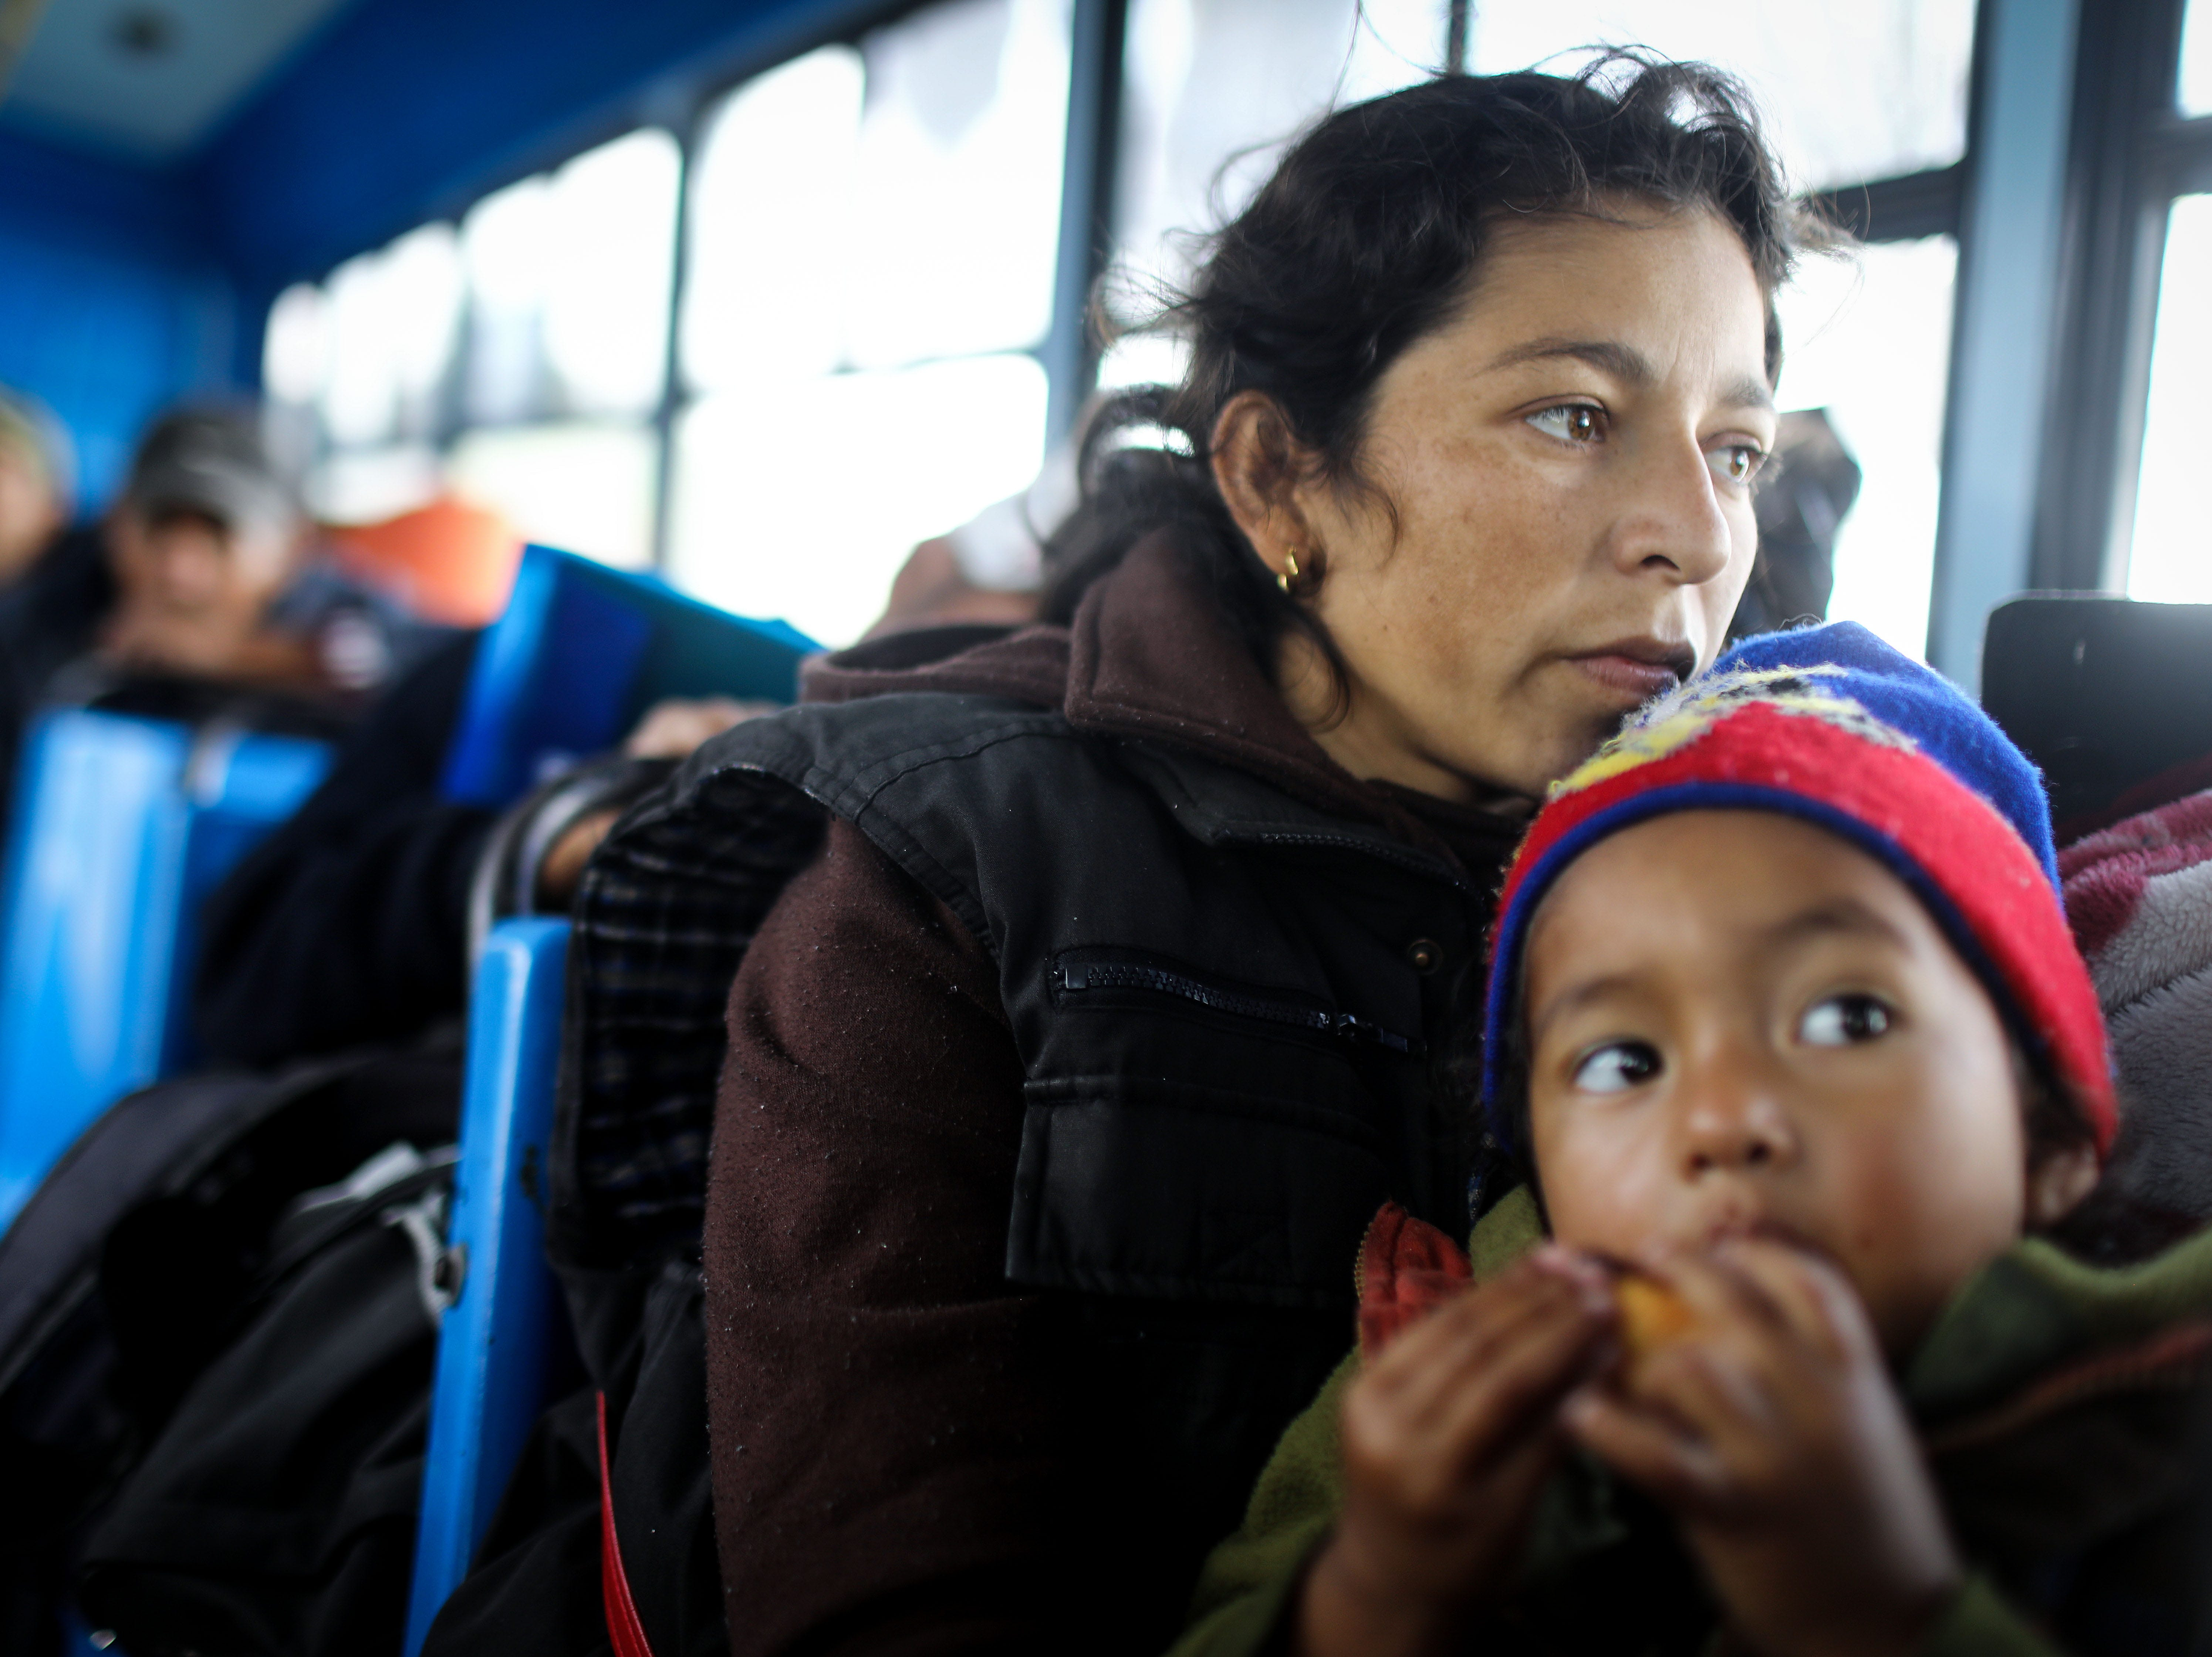 A migrant mother and daughter from Honduras depart on a bus from a temporary shelter where they were staying, on their way to a new shelter on the eastern side of the city, on Nov. 30, 2018 in Tijuana, Mexico.